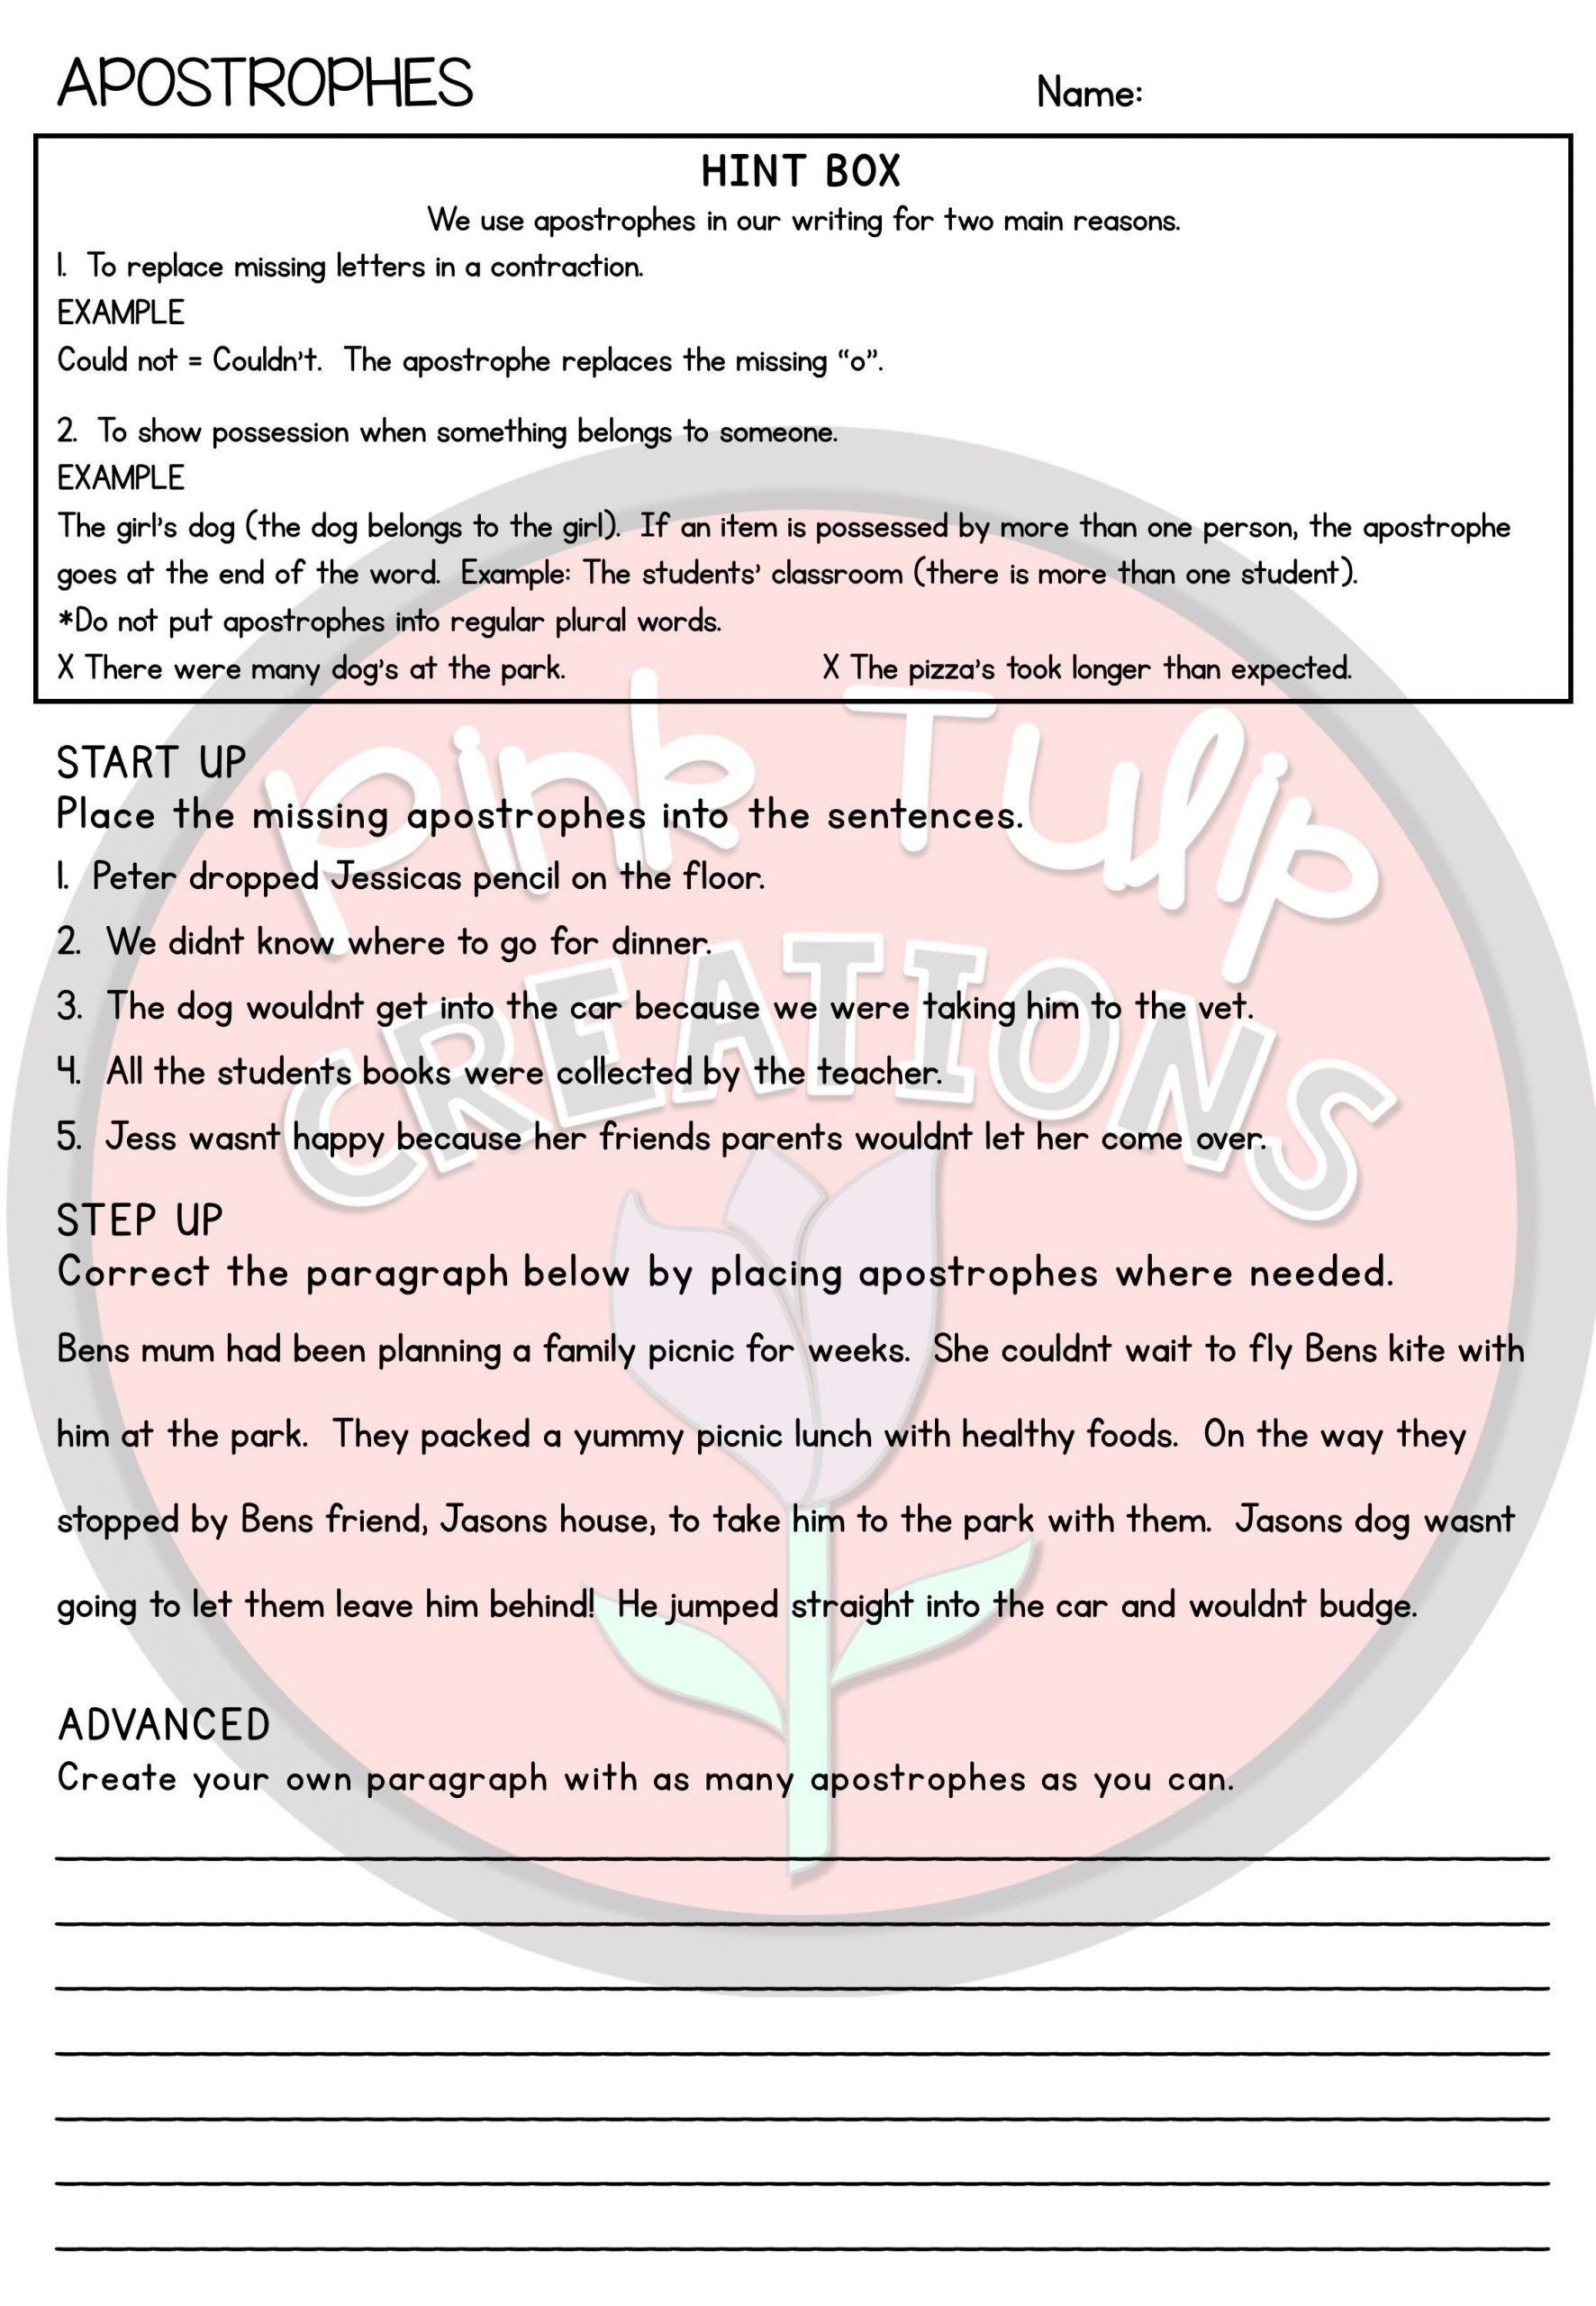 Drawing Conclusions Worksheets 5th Grade Grammar Worksheet